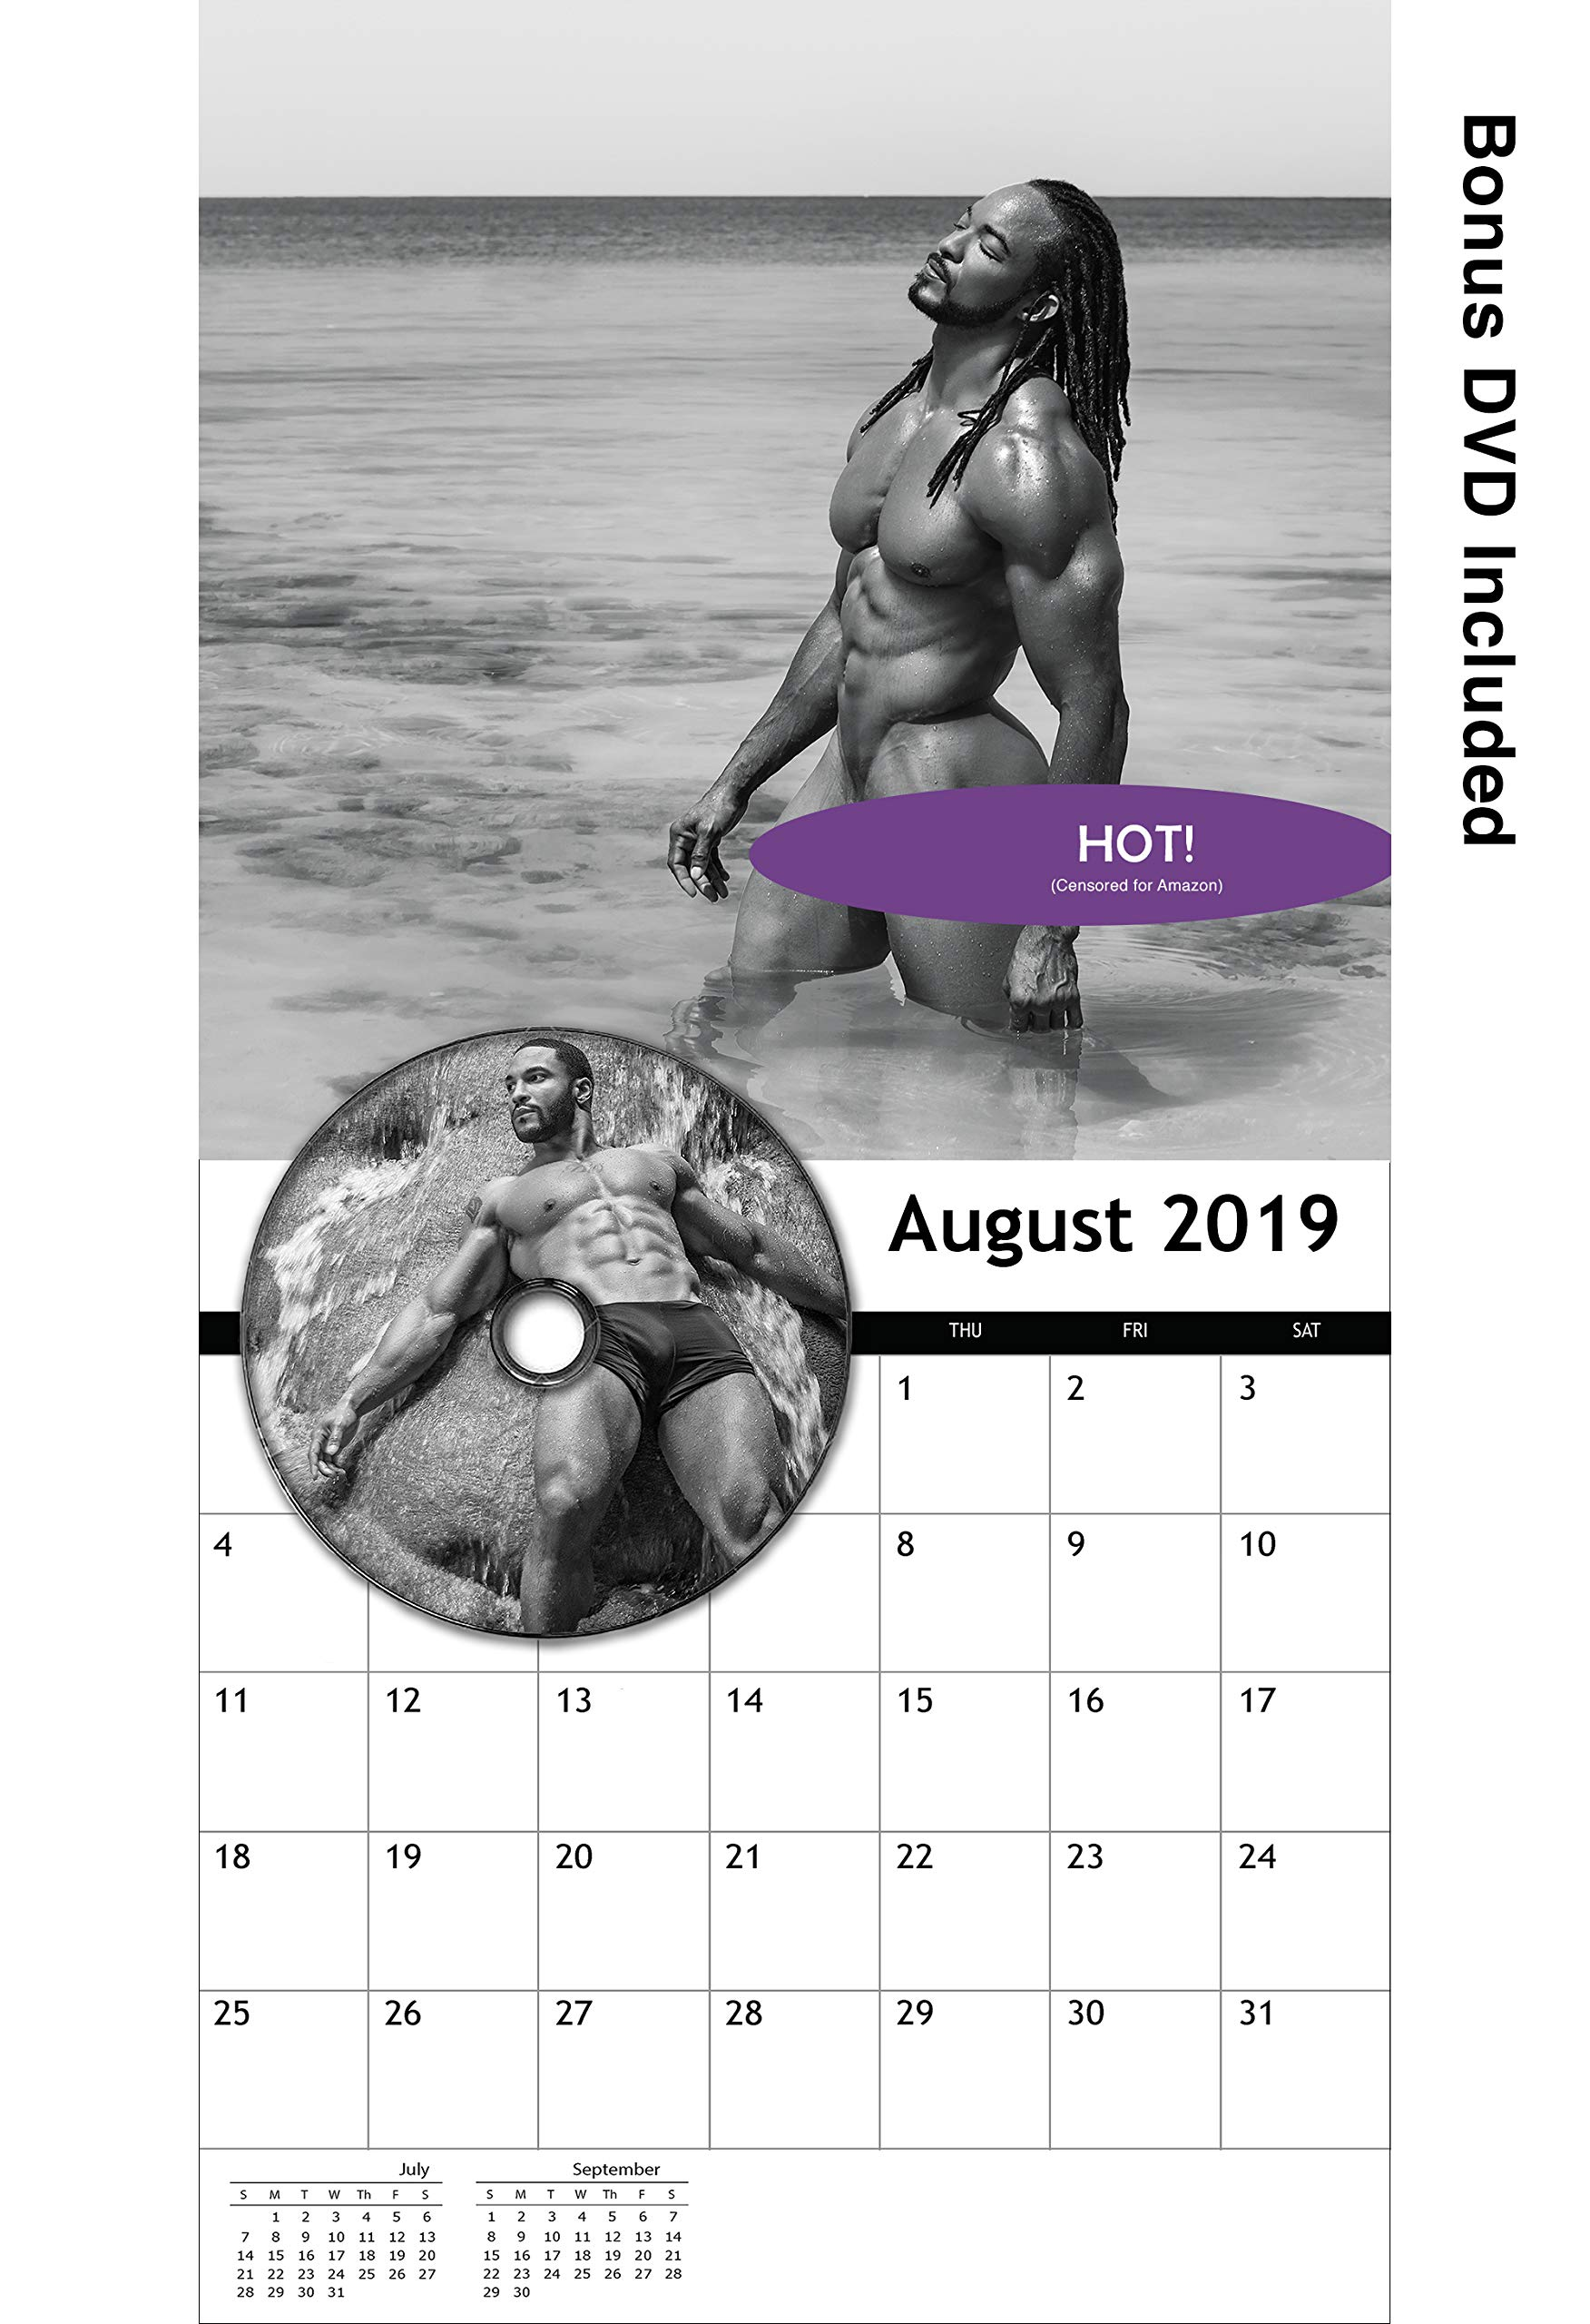 Seems nude chippendales calendar will